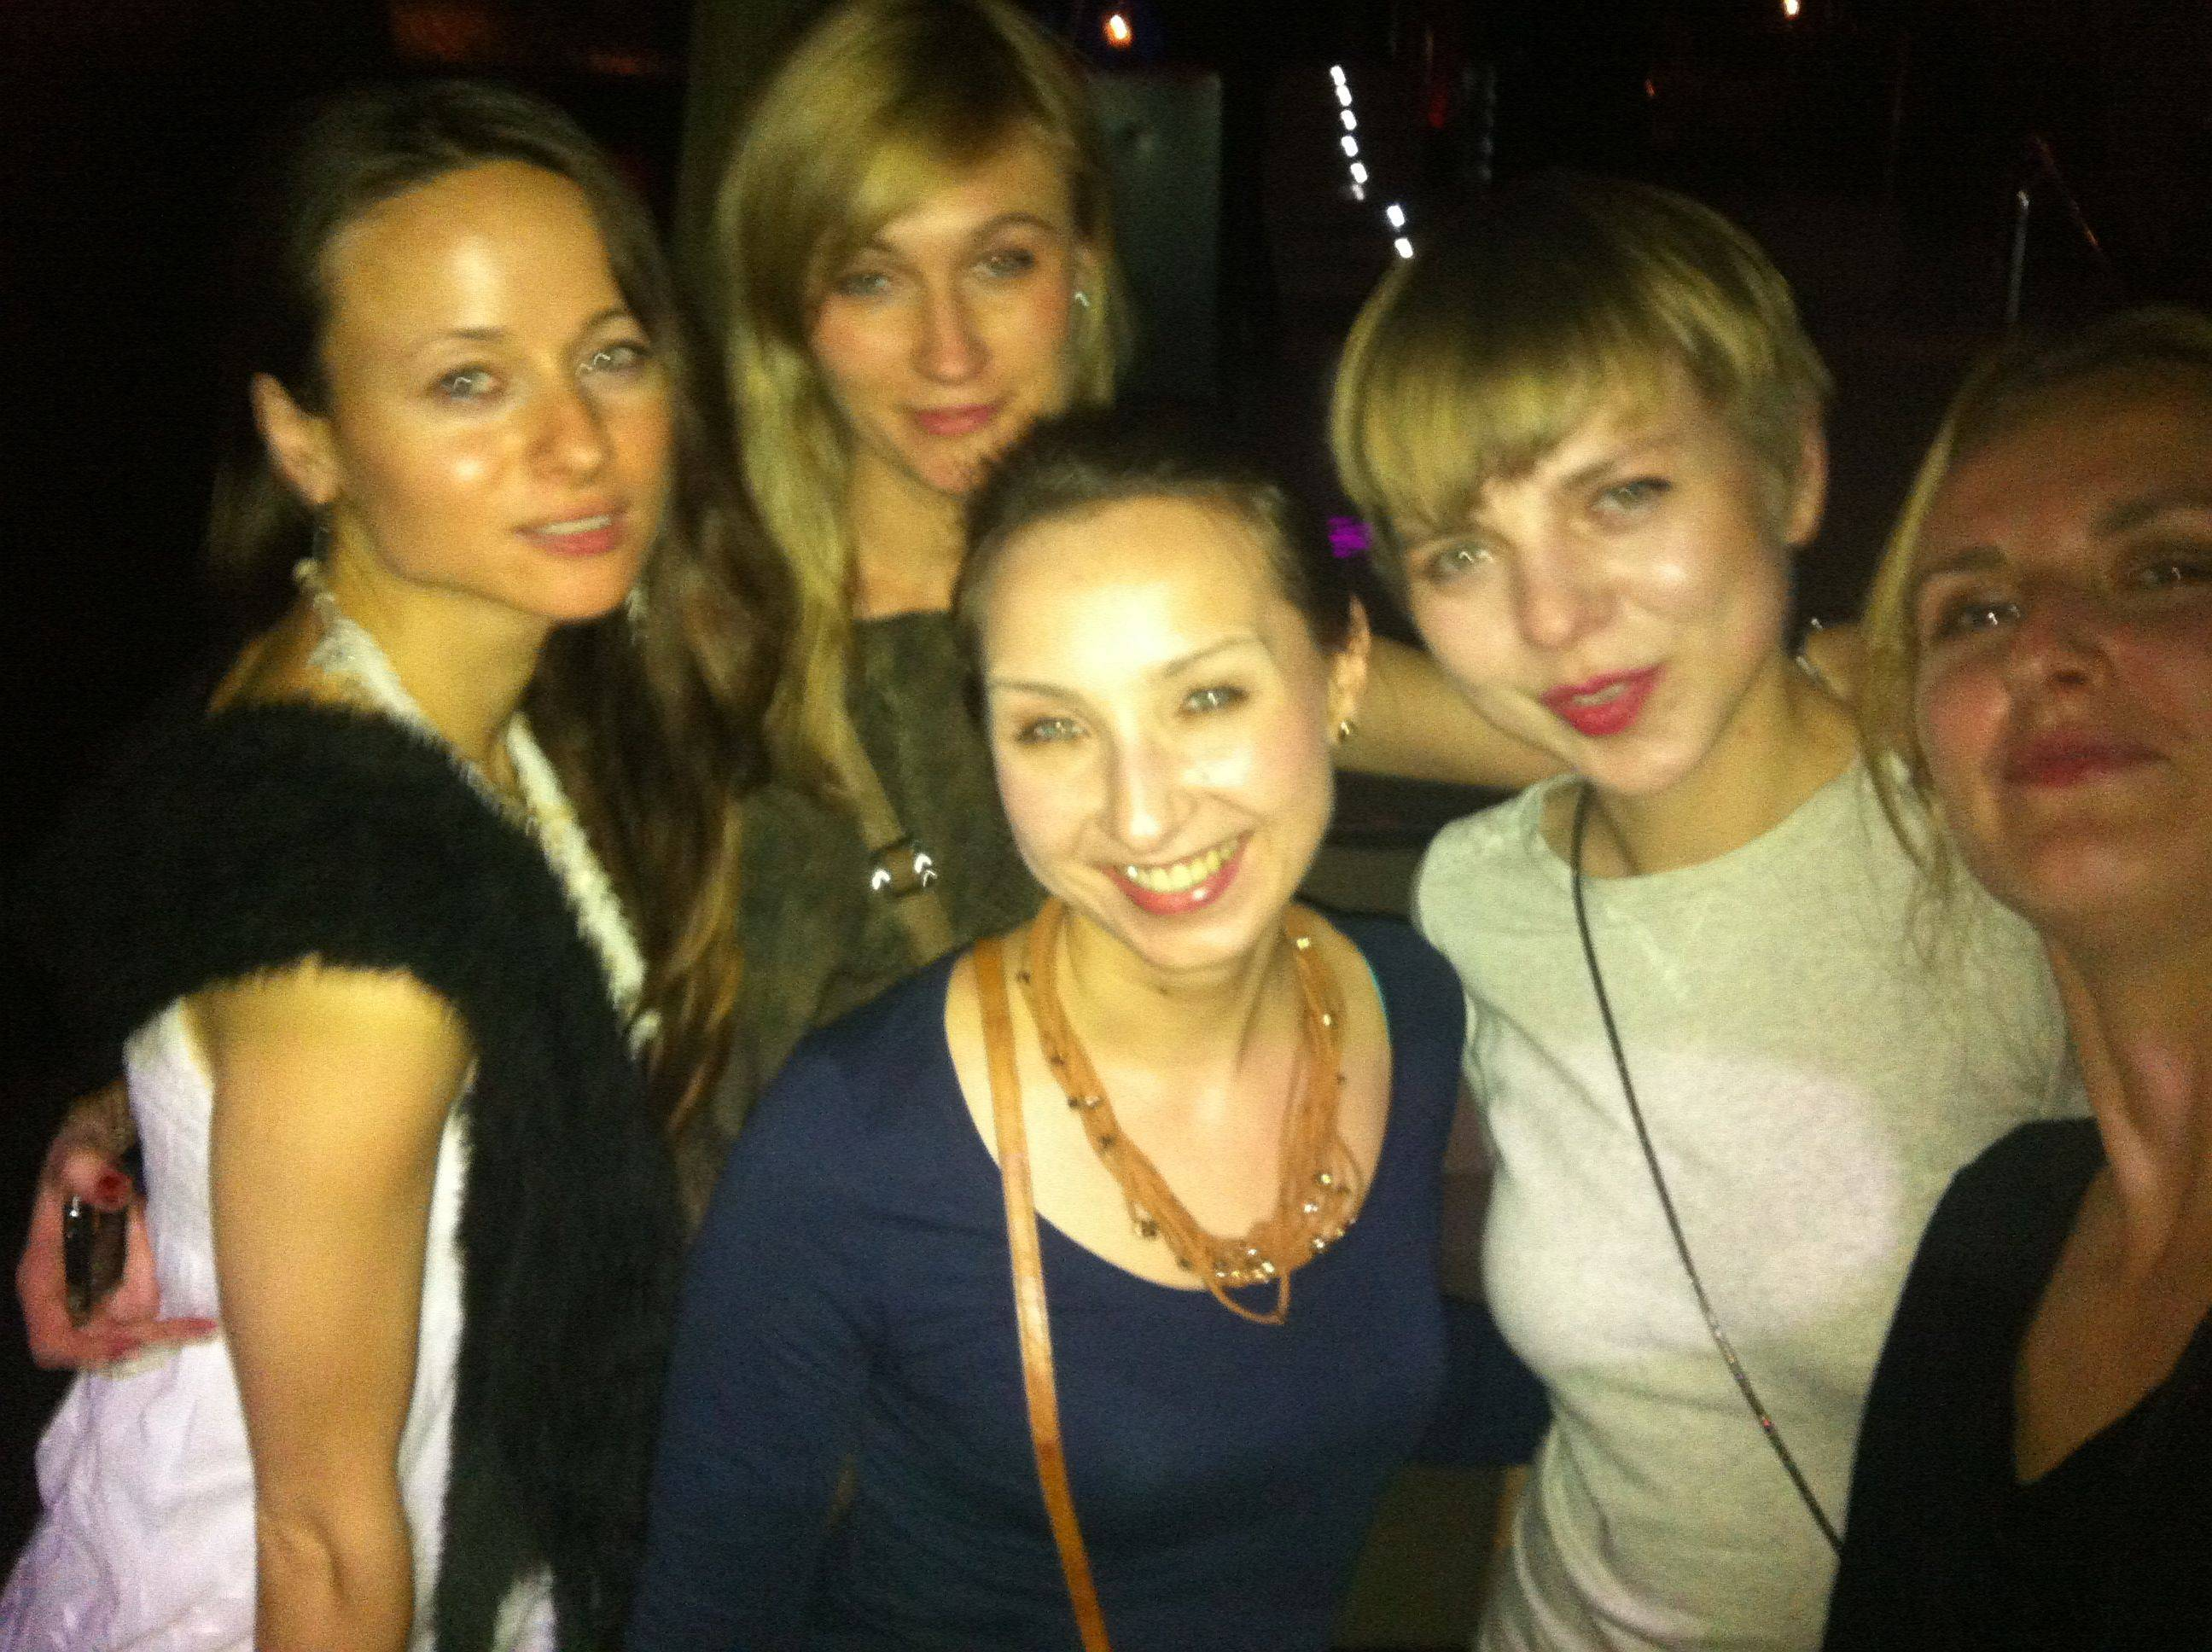 Girls night out in Barcelona